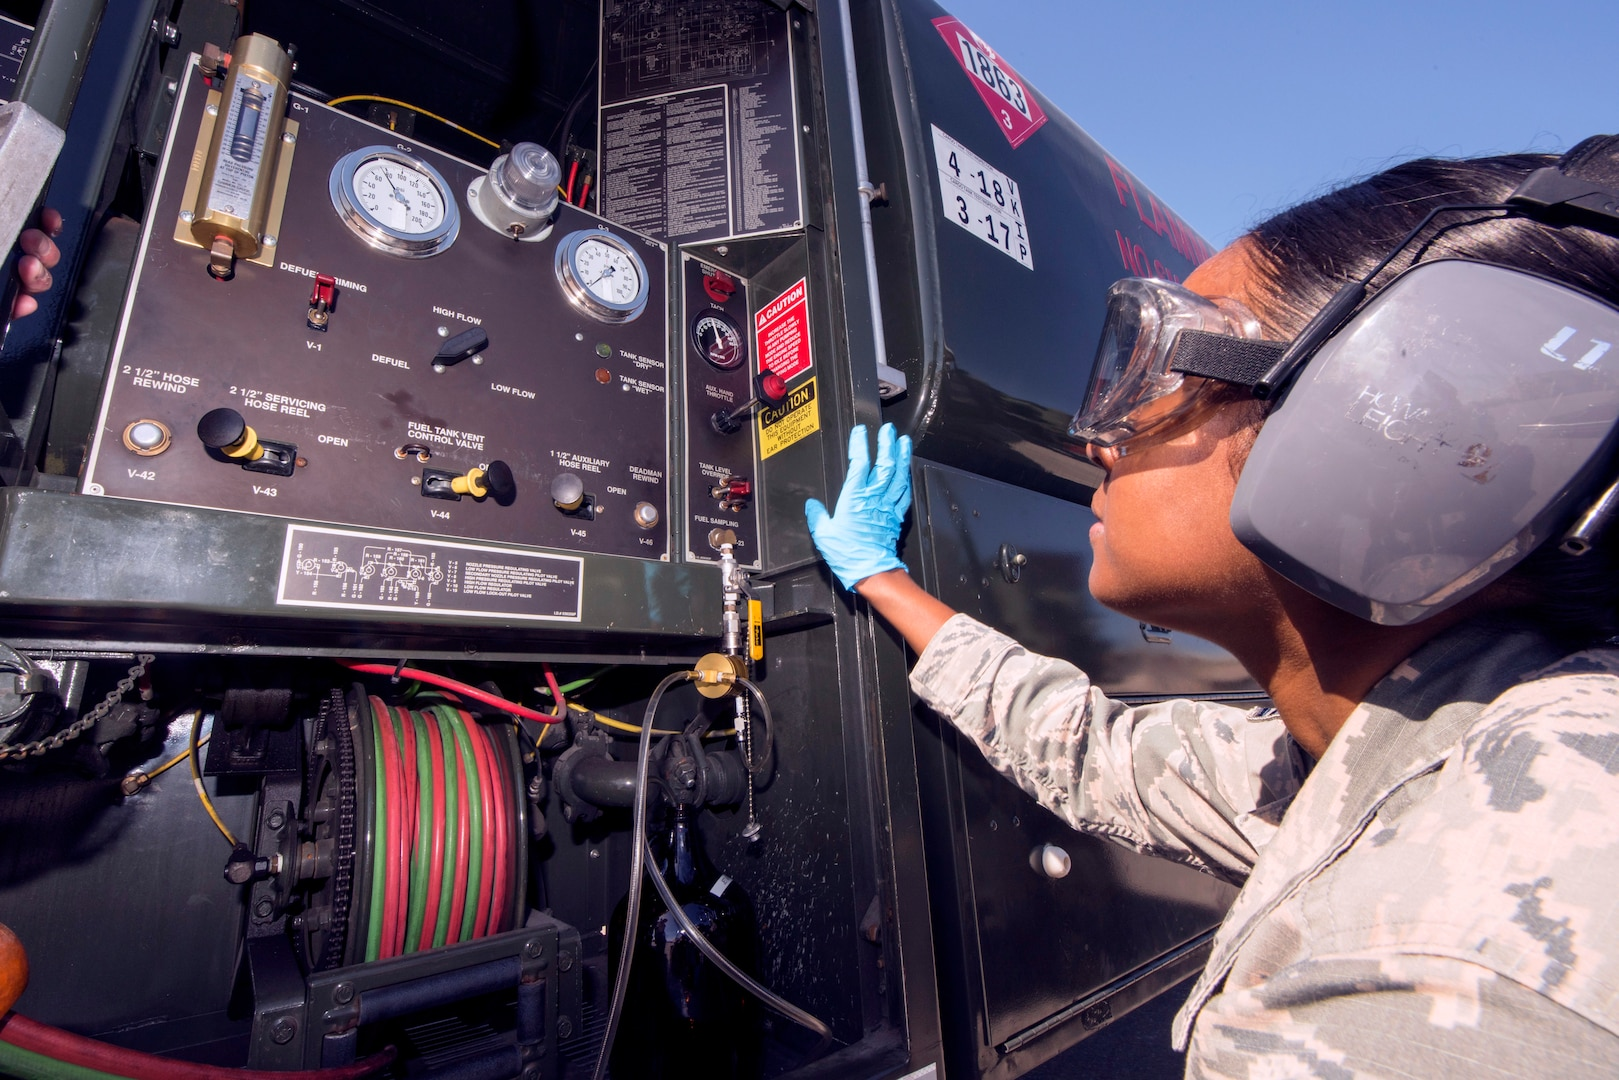 U.S. Air Force Staff Sgt. Akila Mohabir, the 6th Logistics Readiness Squadron fuels laboratory technician, withdraws fuel from a R-11 fuel truck at MacDill Air Force Base, Florida, March 14, 2019.